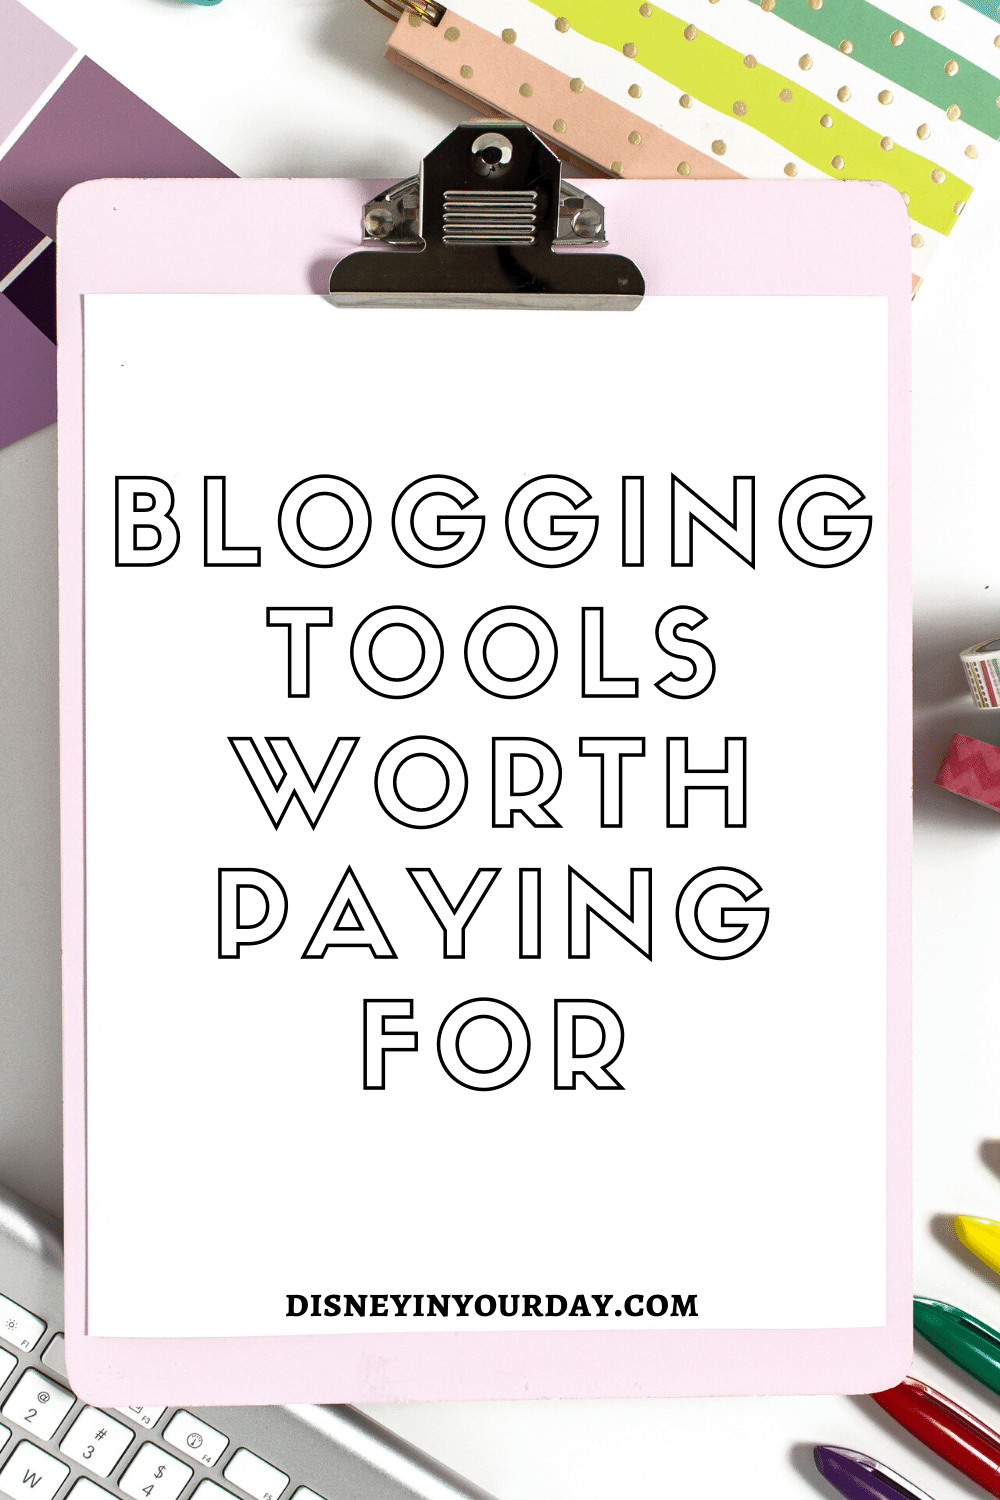 blogging tools worth paying for - Disney in your Day